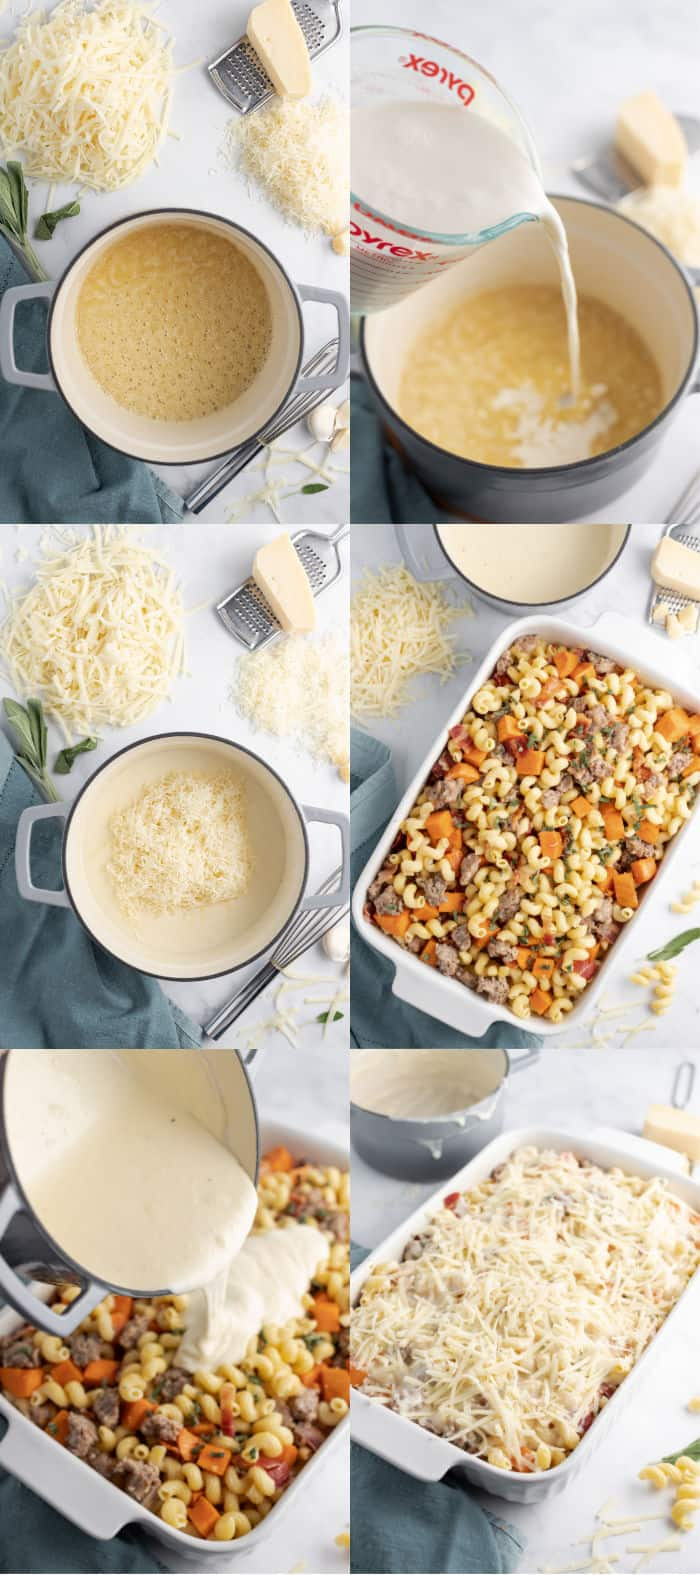 steps to make cheese sauce and assemble a sausage & sweet potato pasta bake